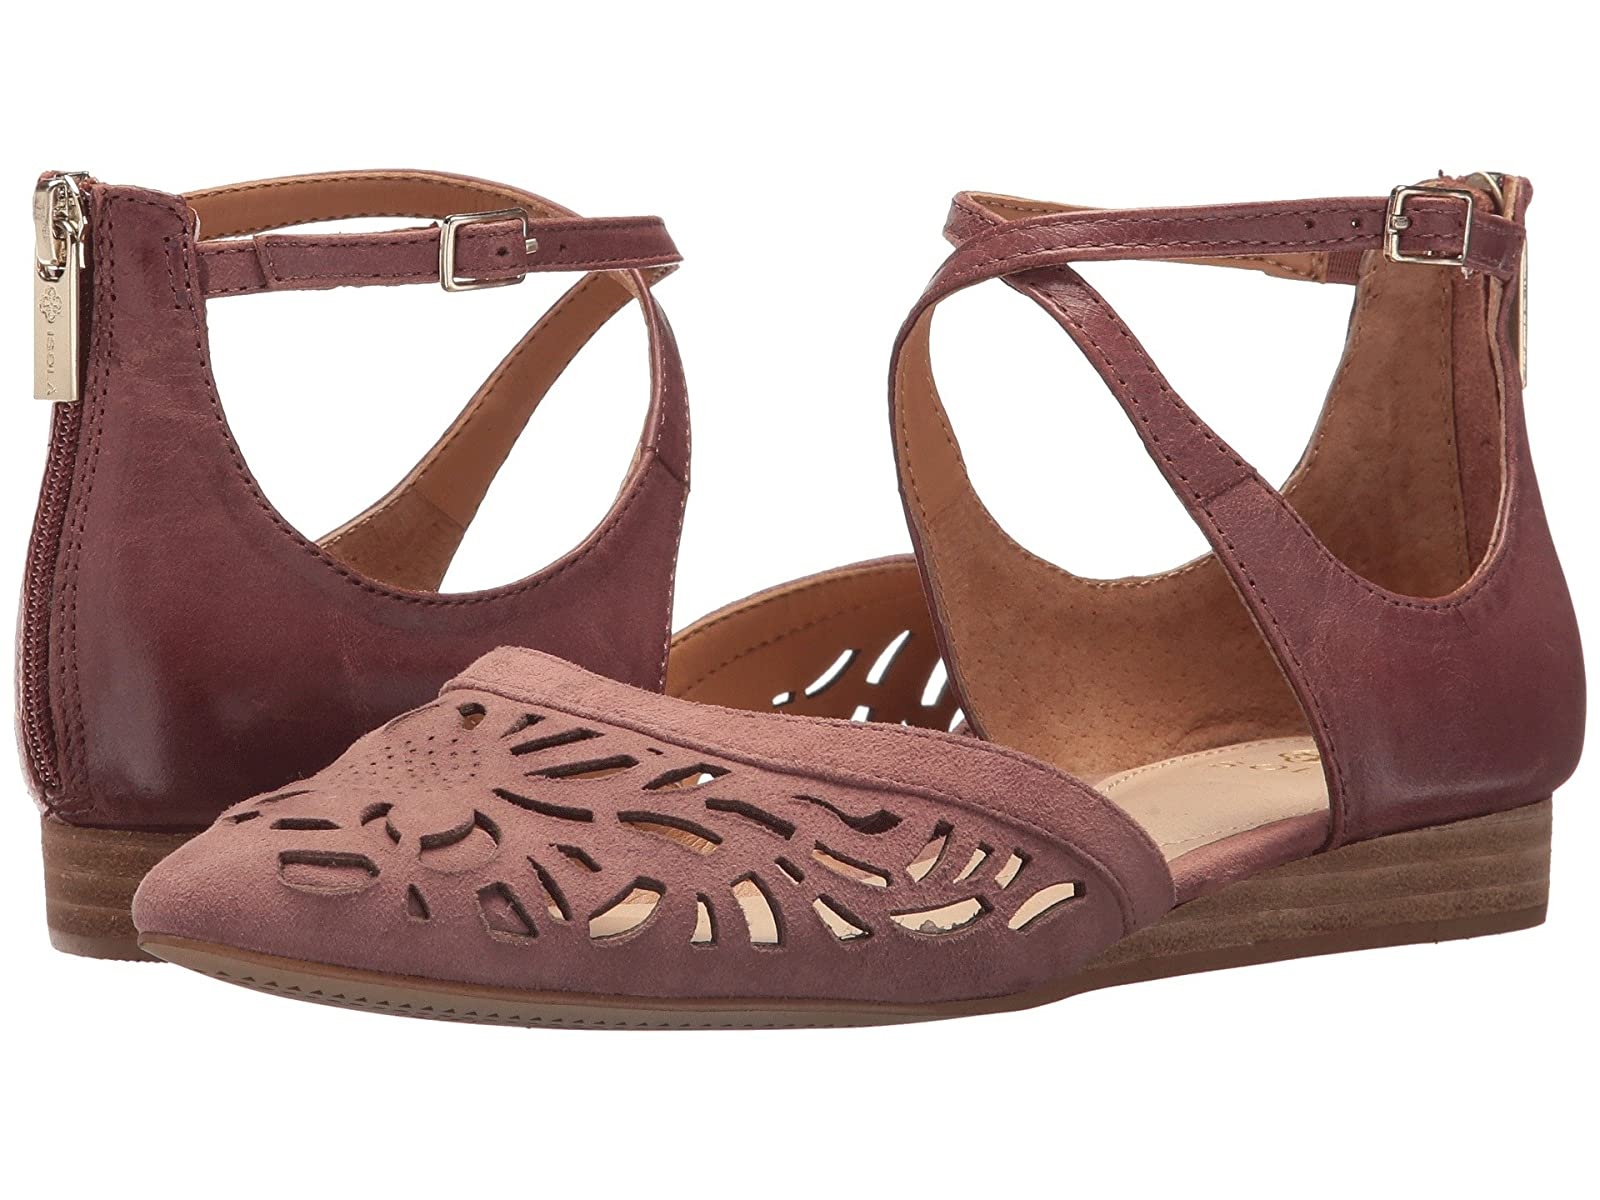 Isola CarinaCheap and distinctive eye-catching shoes